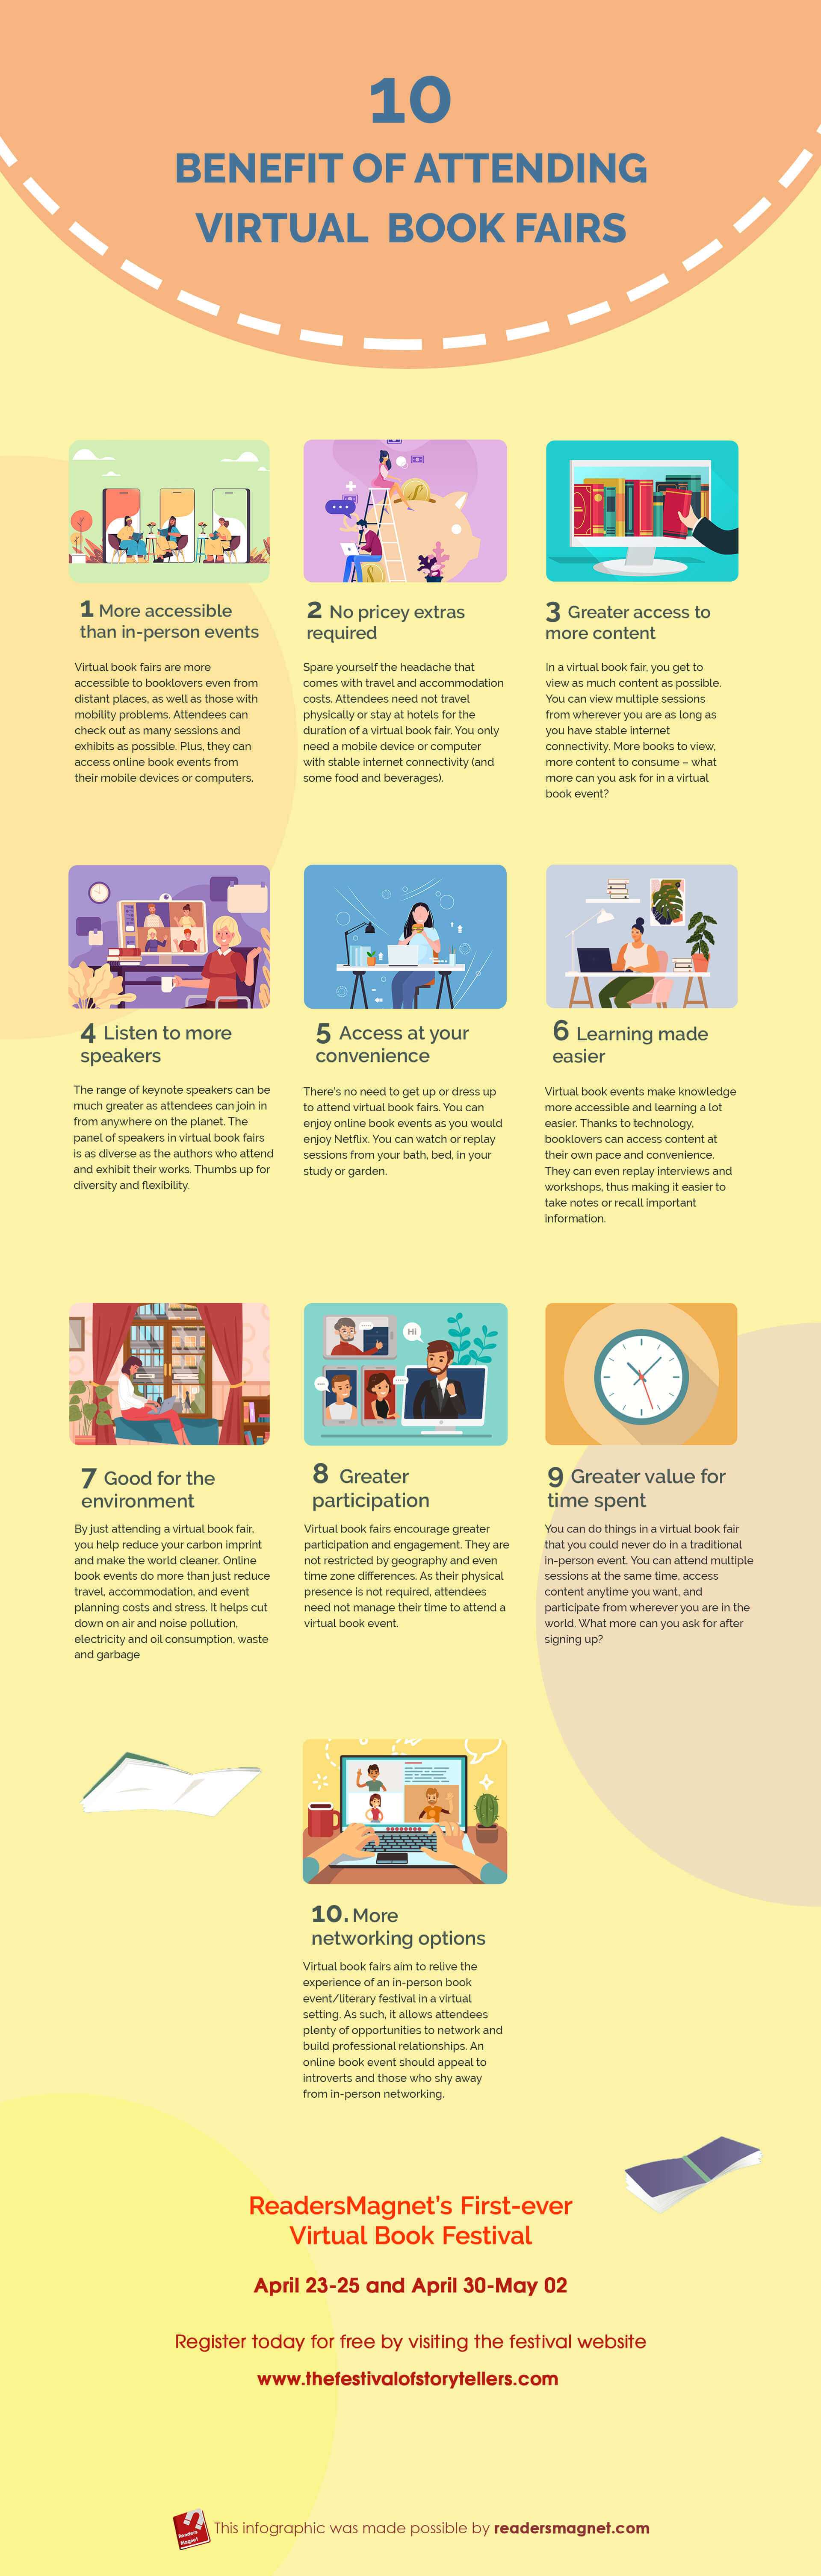 Rm Infographic 10 Benefits Of Attending Virtual Book Fairs infographic